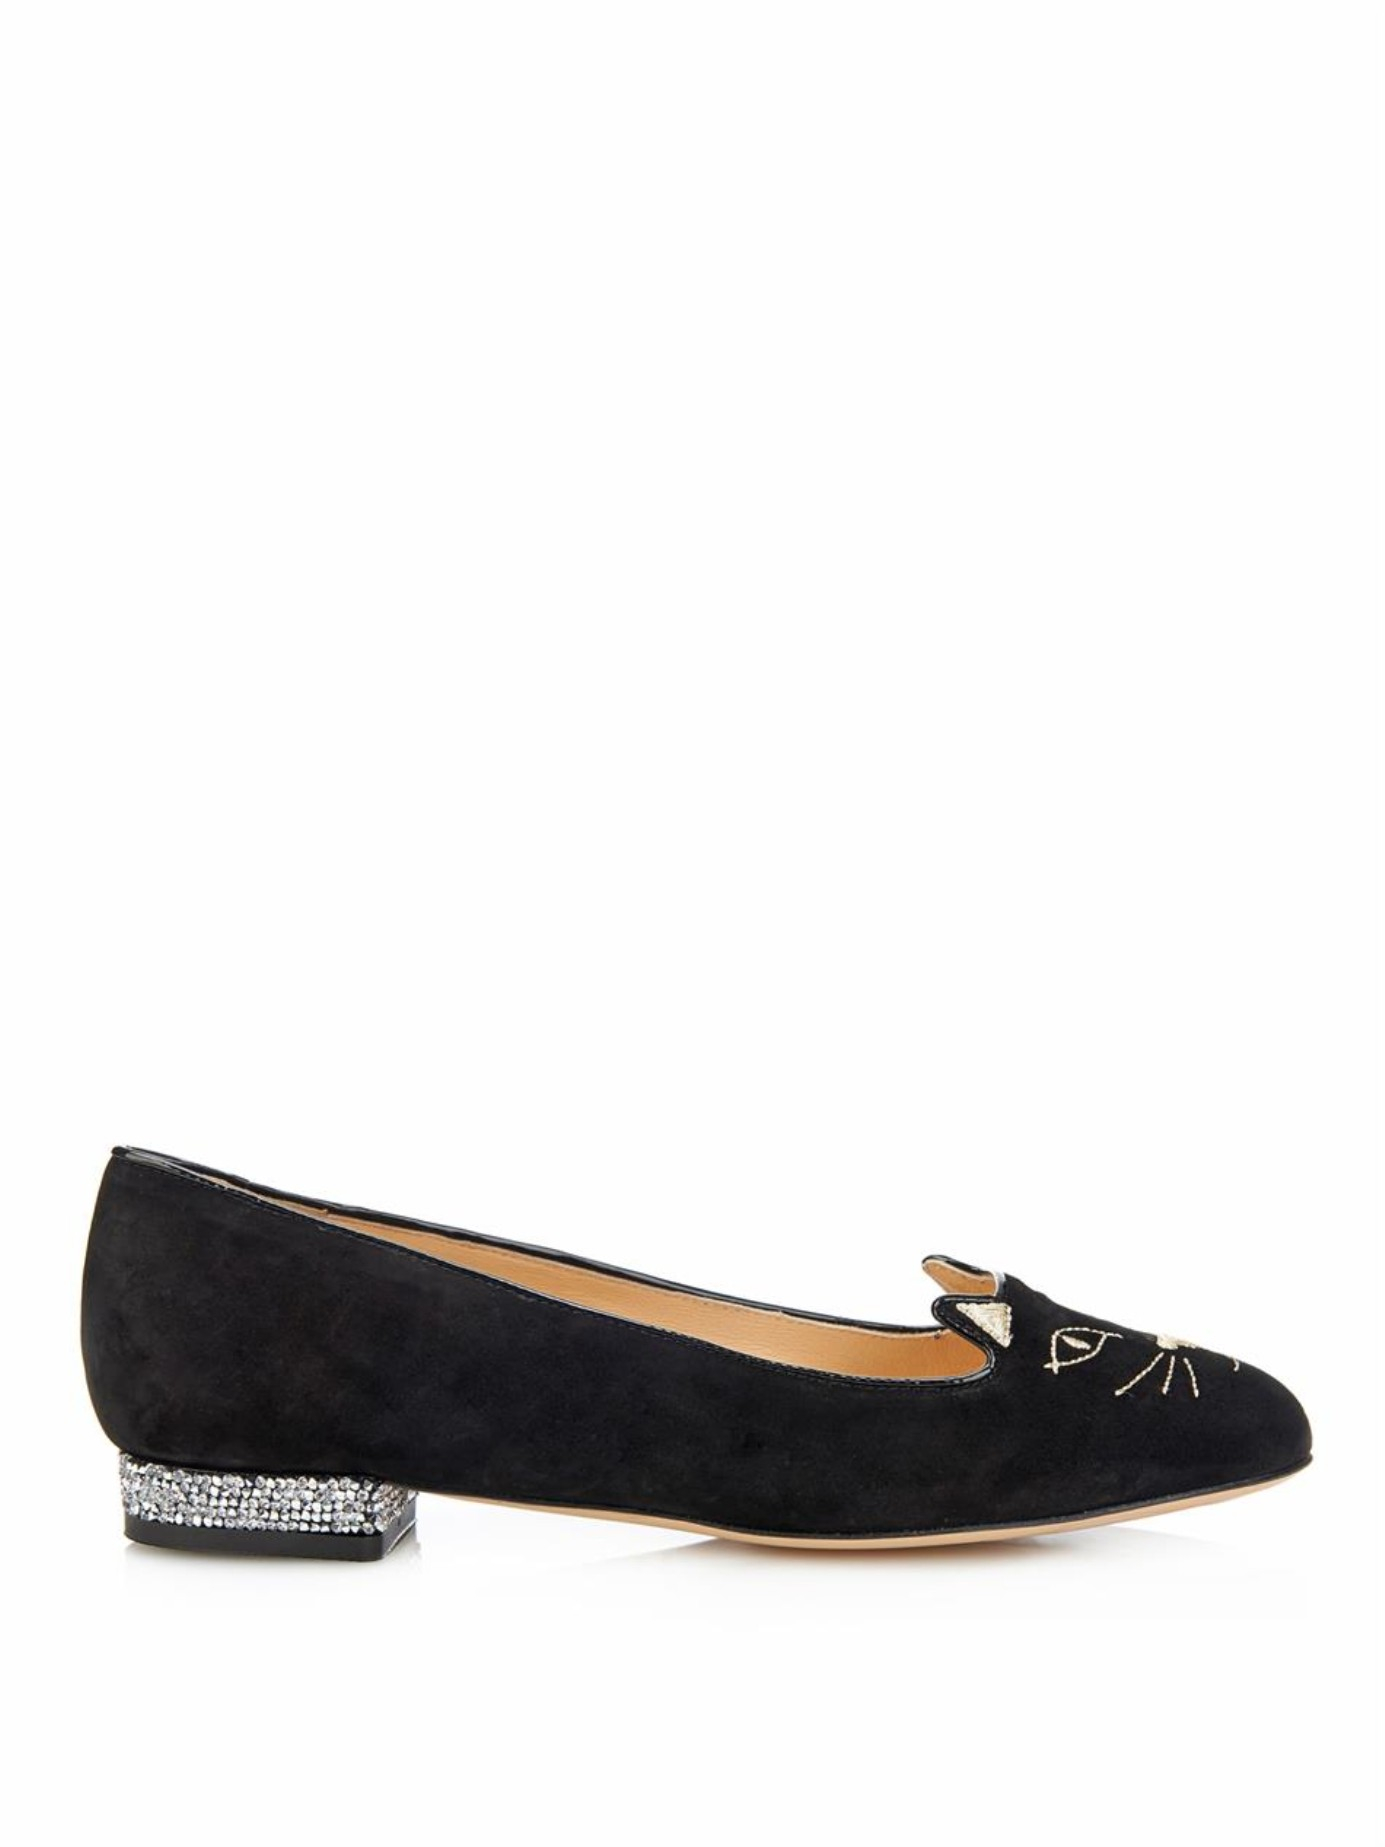 Charlotte Olympia Embellished leopard loafers vEsWuq